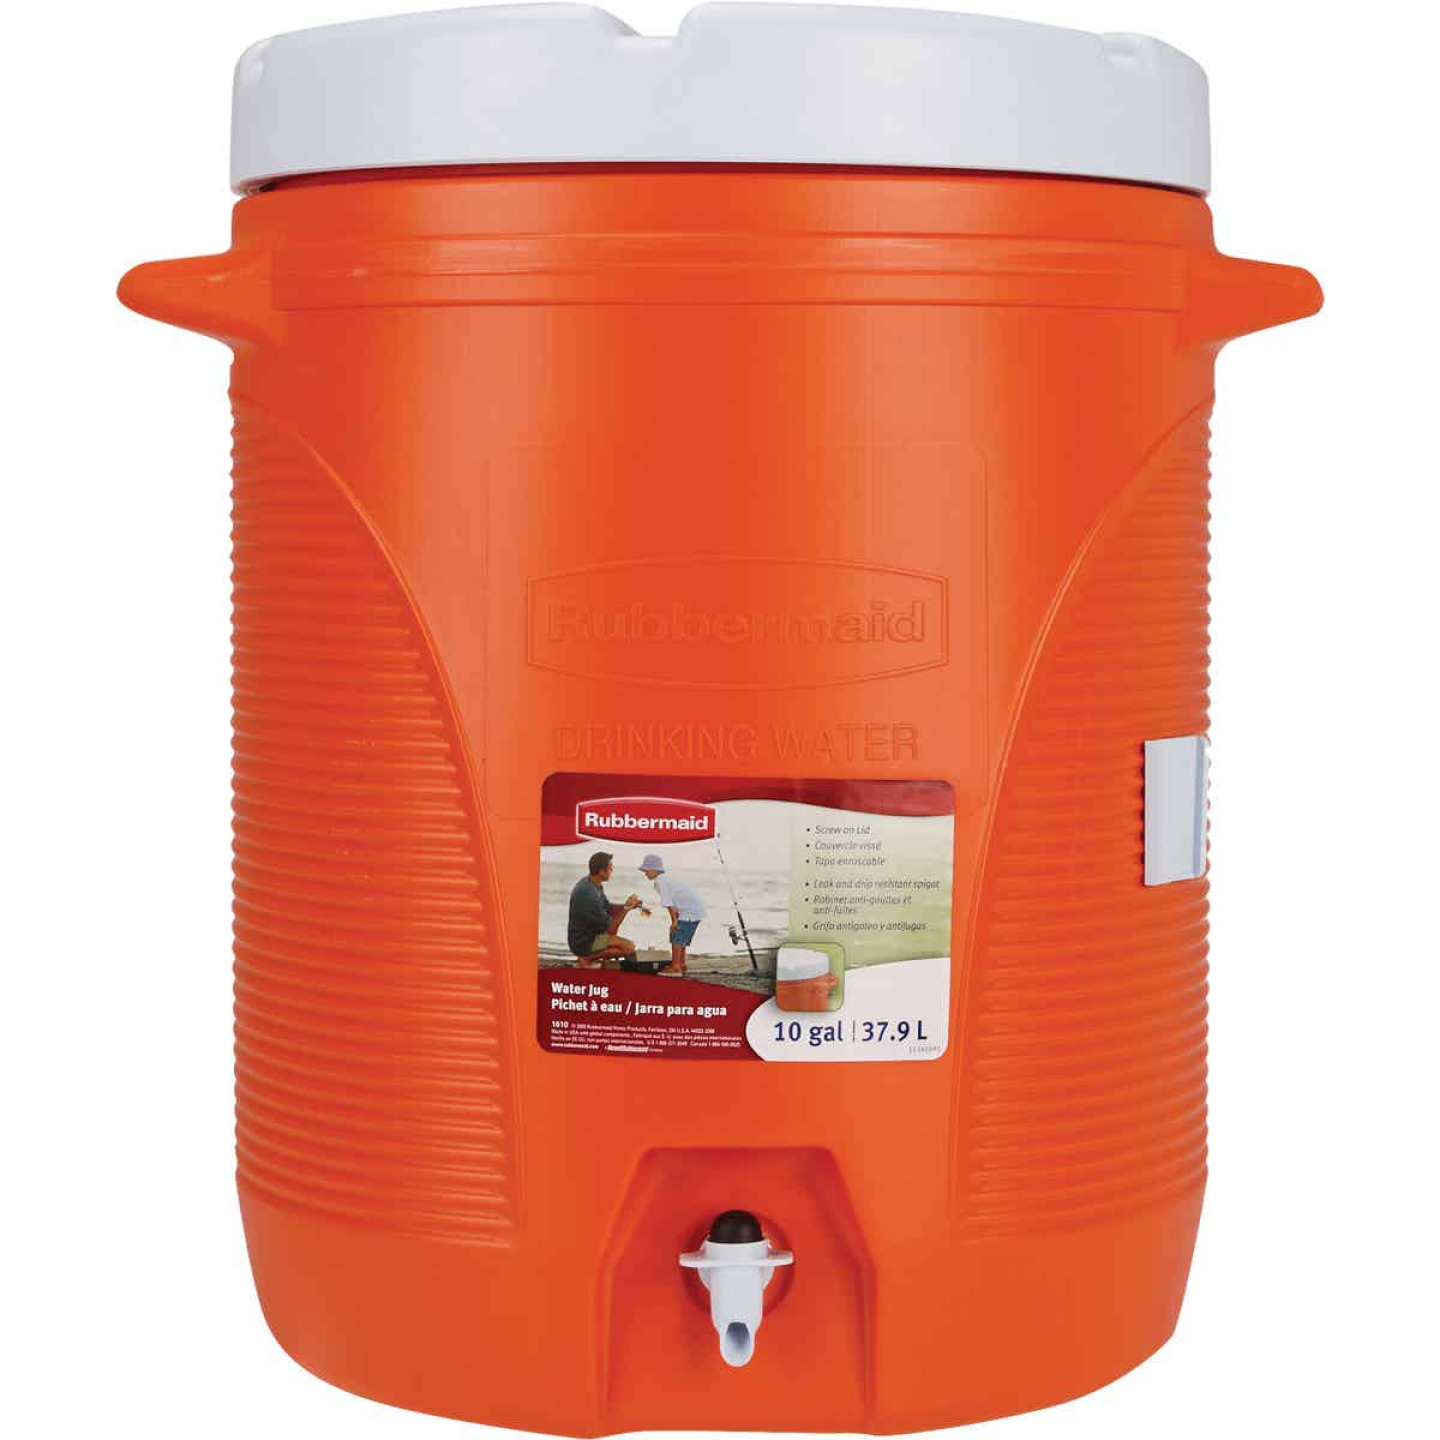 Rubbermaid 10 Gal. Orange Water Jug with In-Molded Handle Image 2